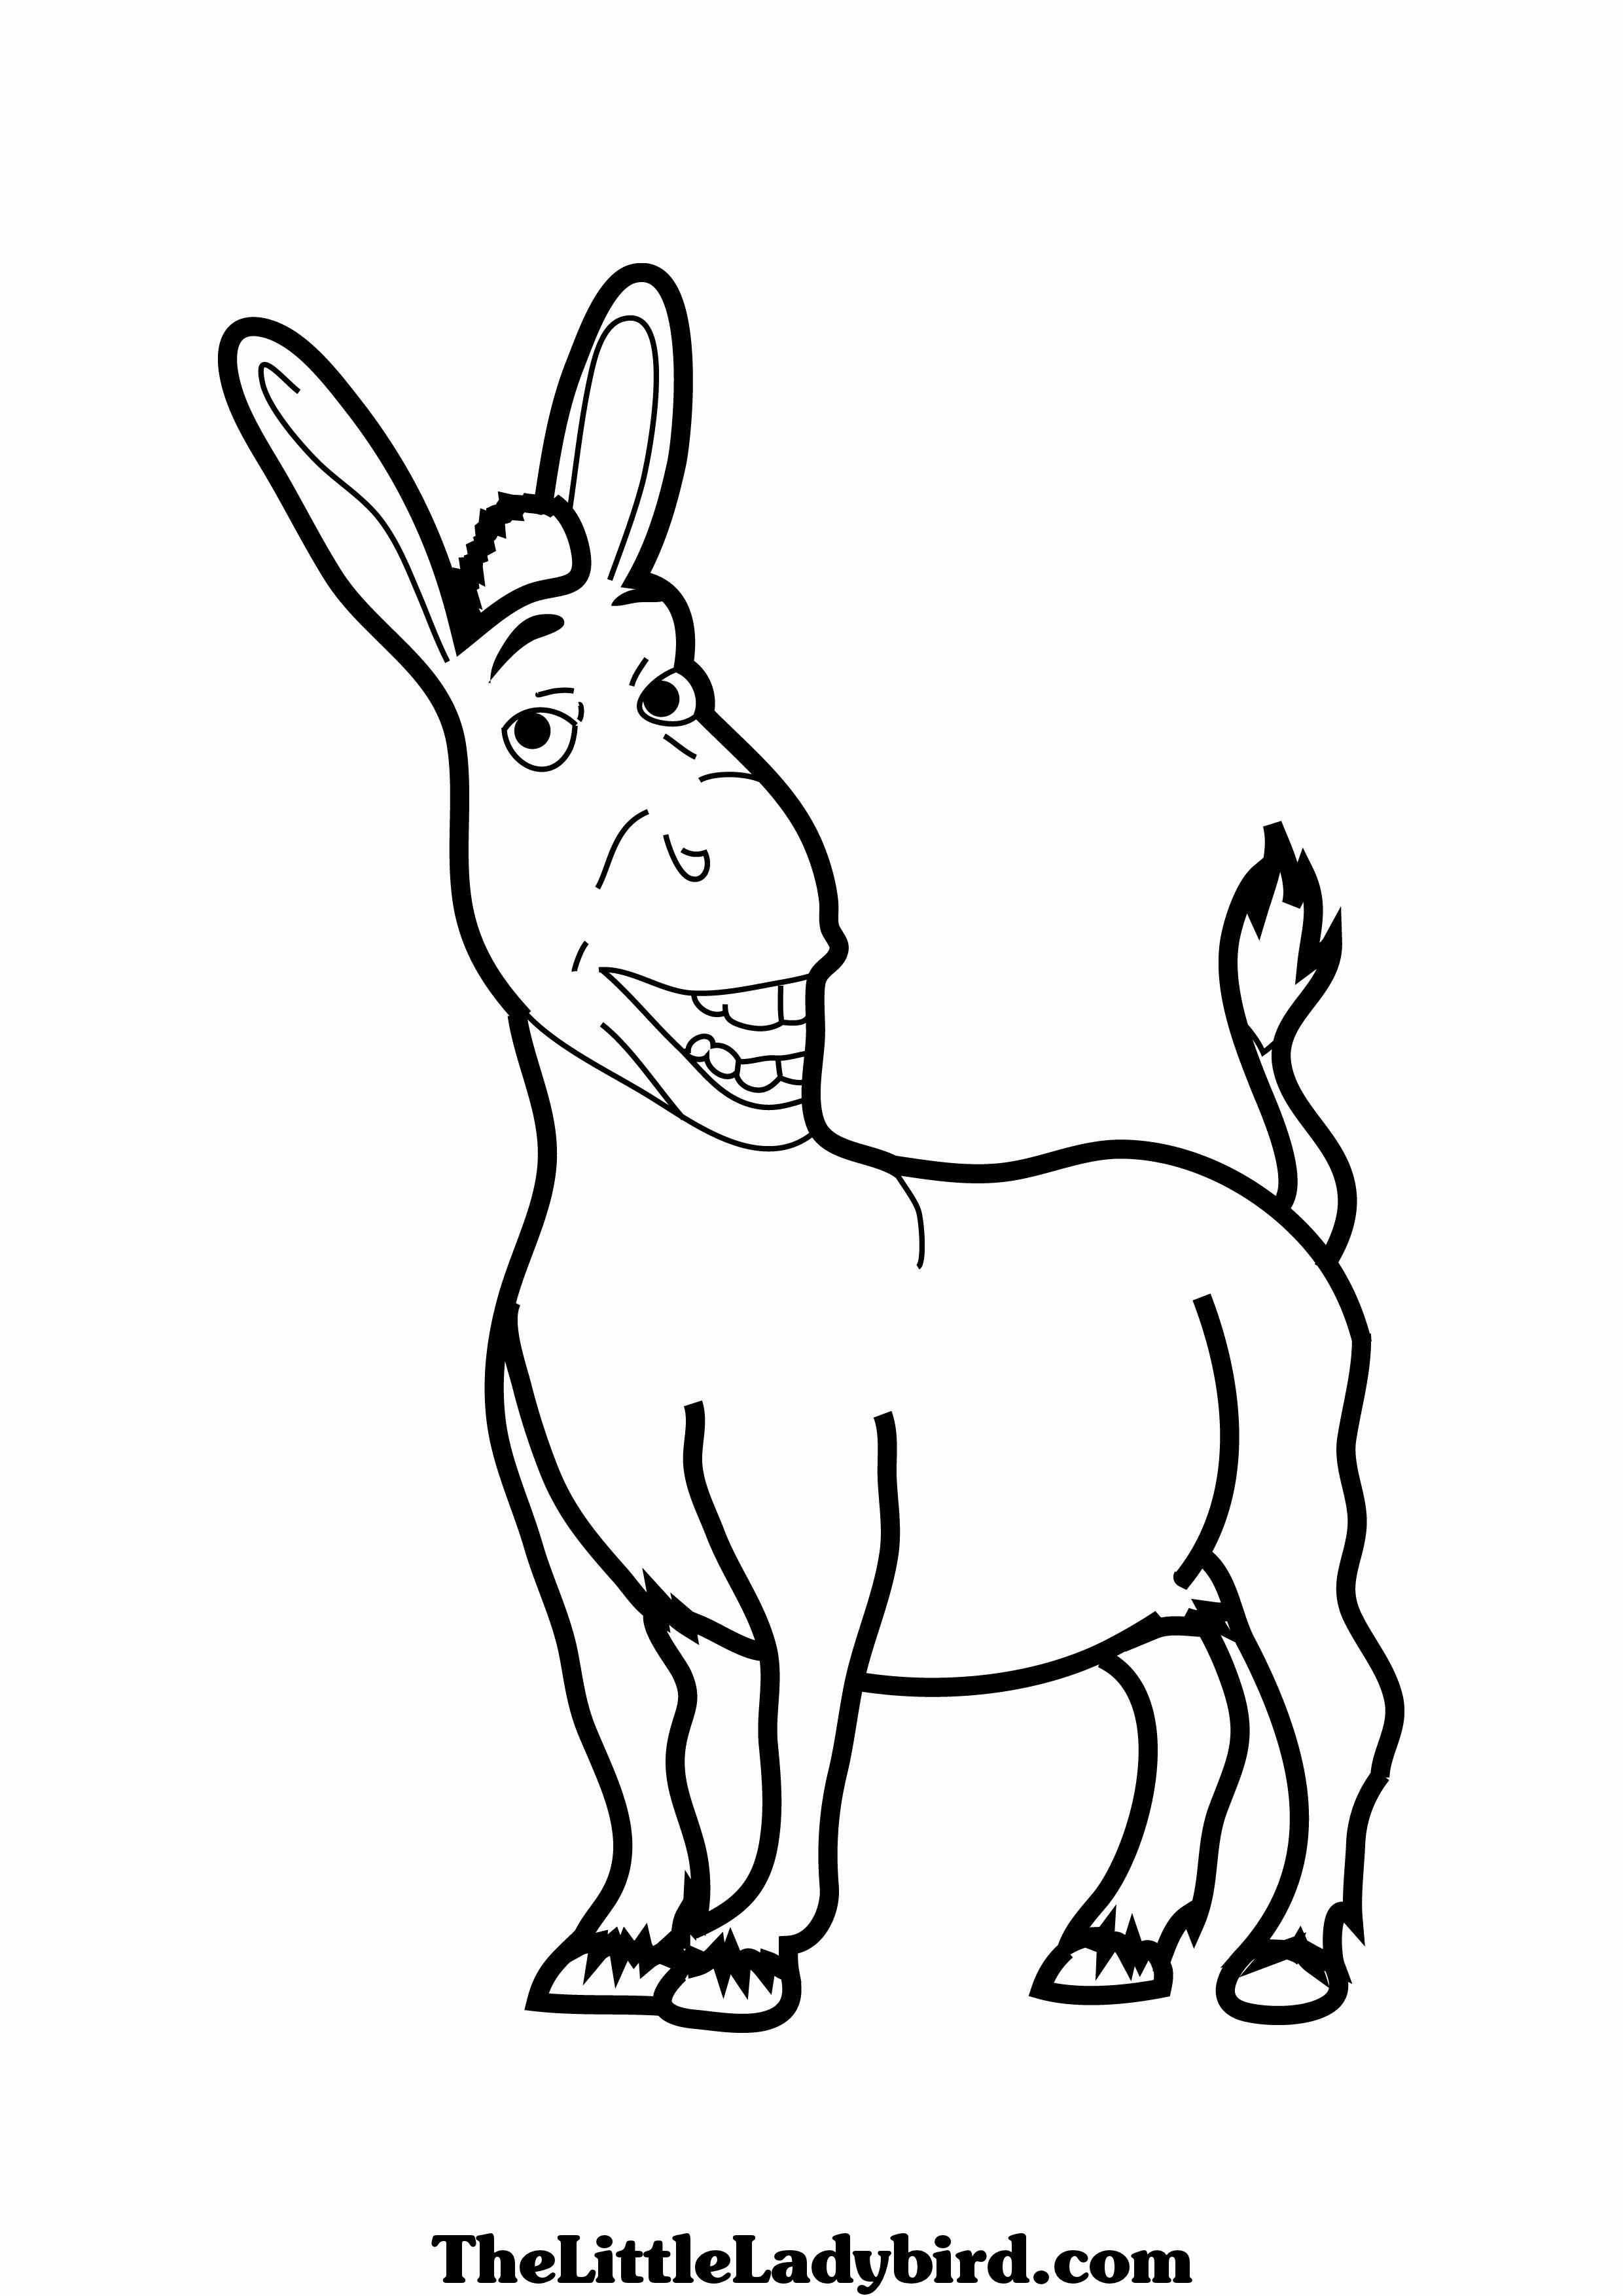 Shrek Donkey Drawing at GetDrawings.com | Free for personal use ...